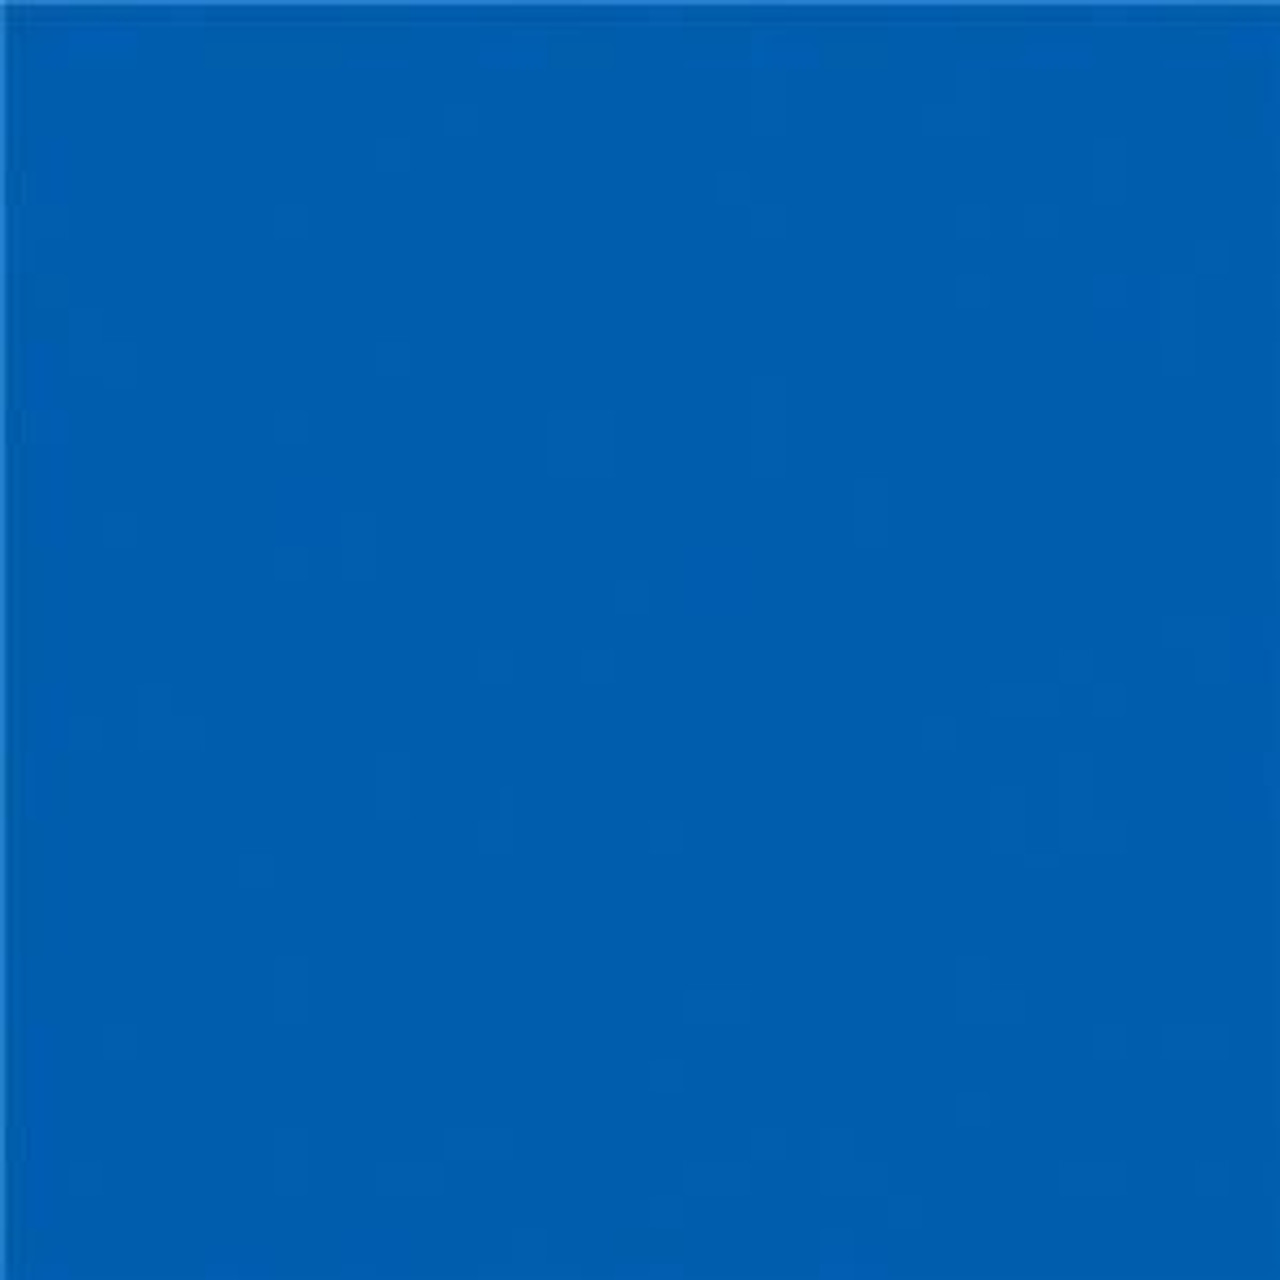 #0378 Rosco Gels Roscolux Alice Blue, 20x24""